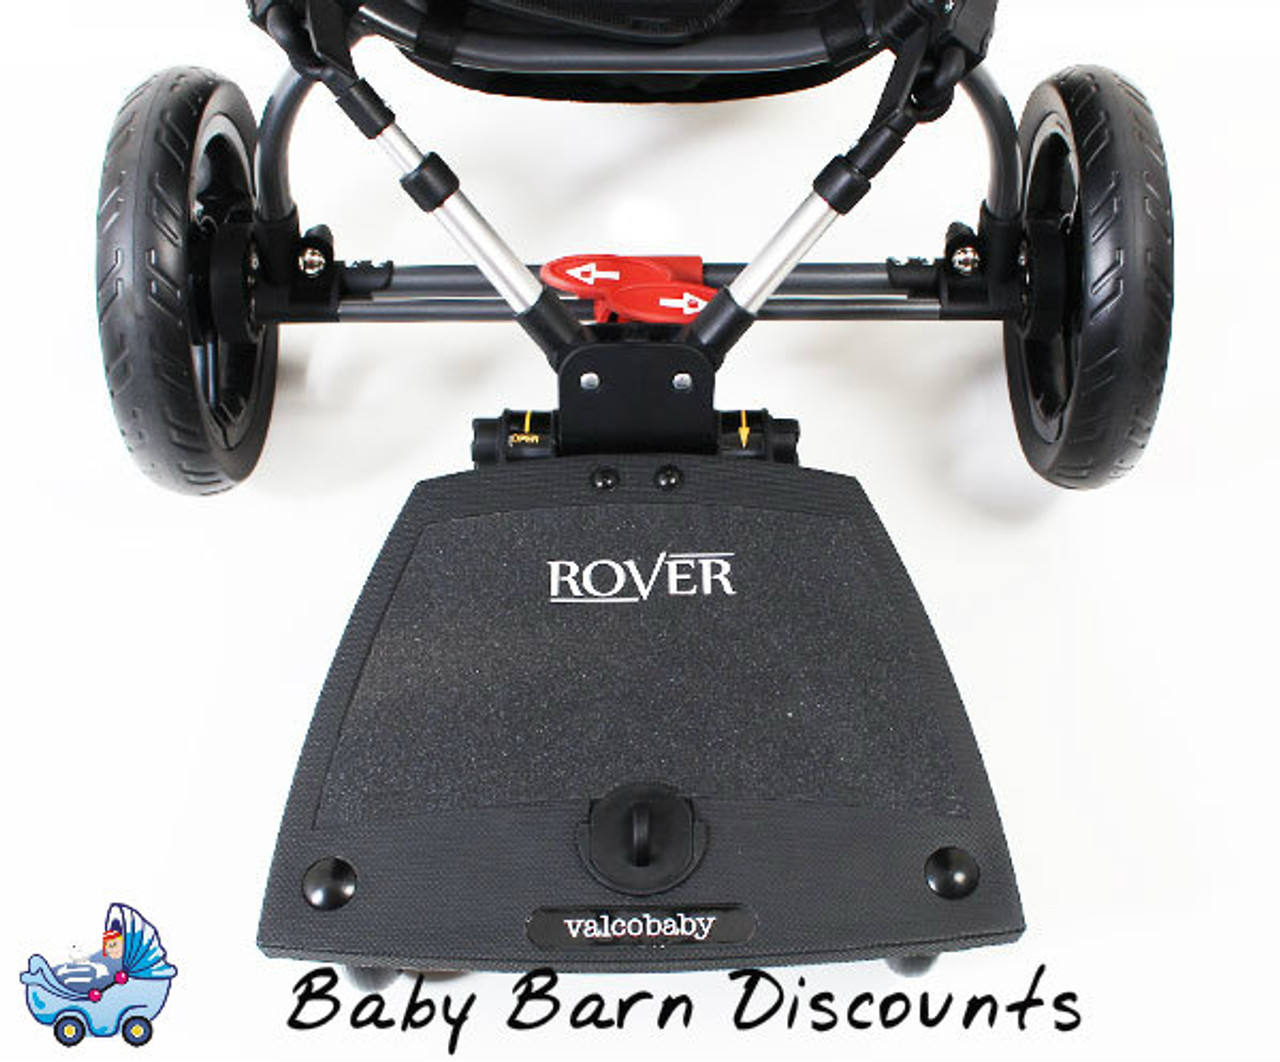 Valco Baby Rover Universal Sit Or Stand Toddler Ride On Board Fits